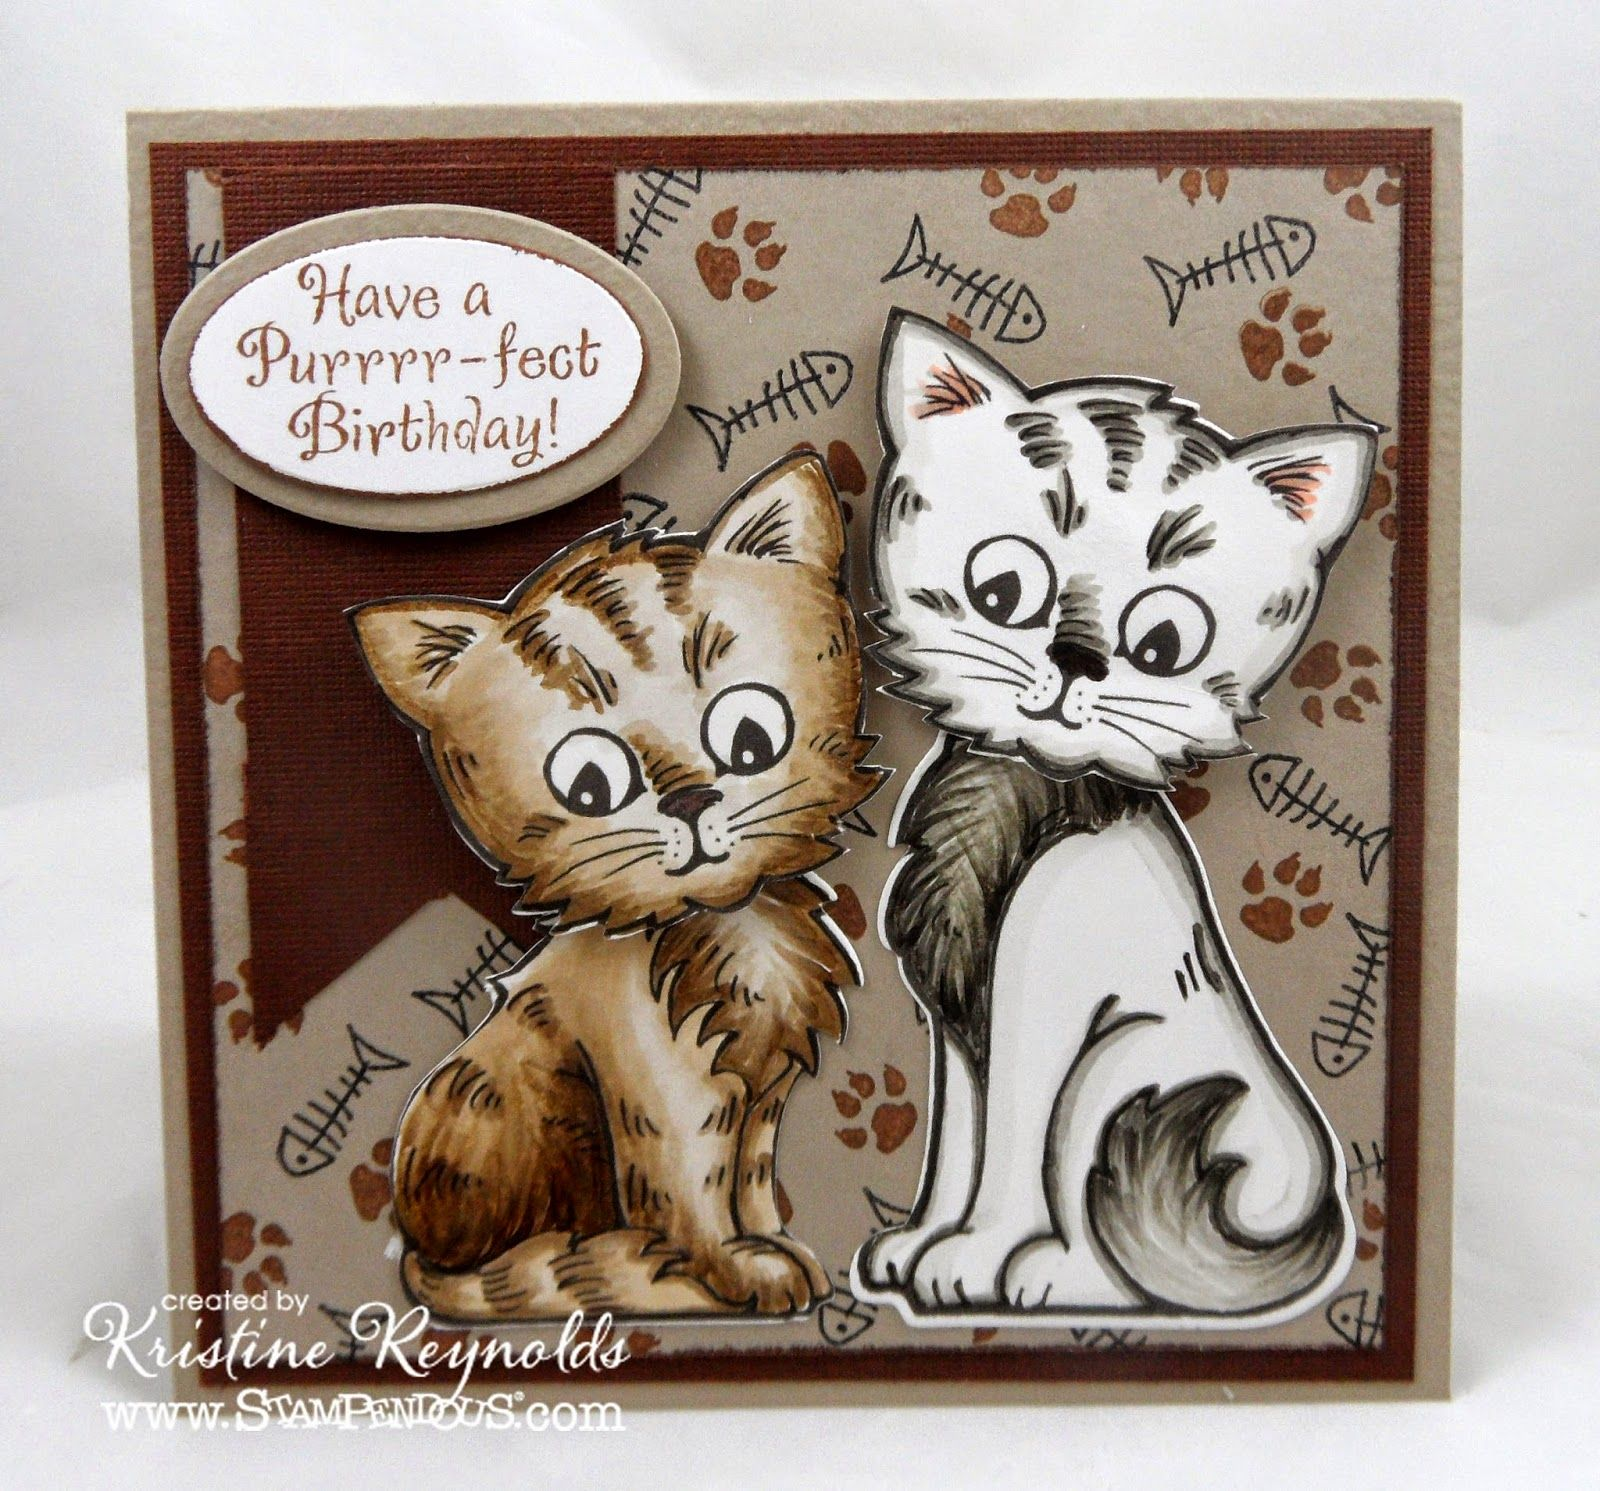 Stamping Scrapping In California Purrrr Fect Birthday Cat Cards Stampendous Cards Cards Crazy